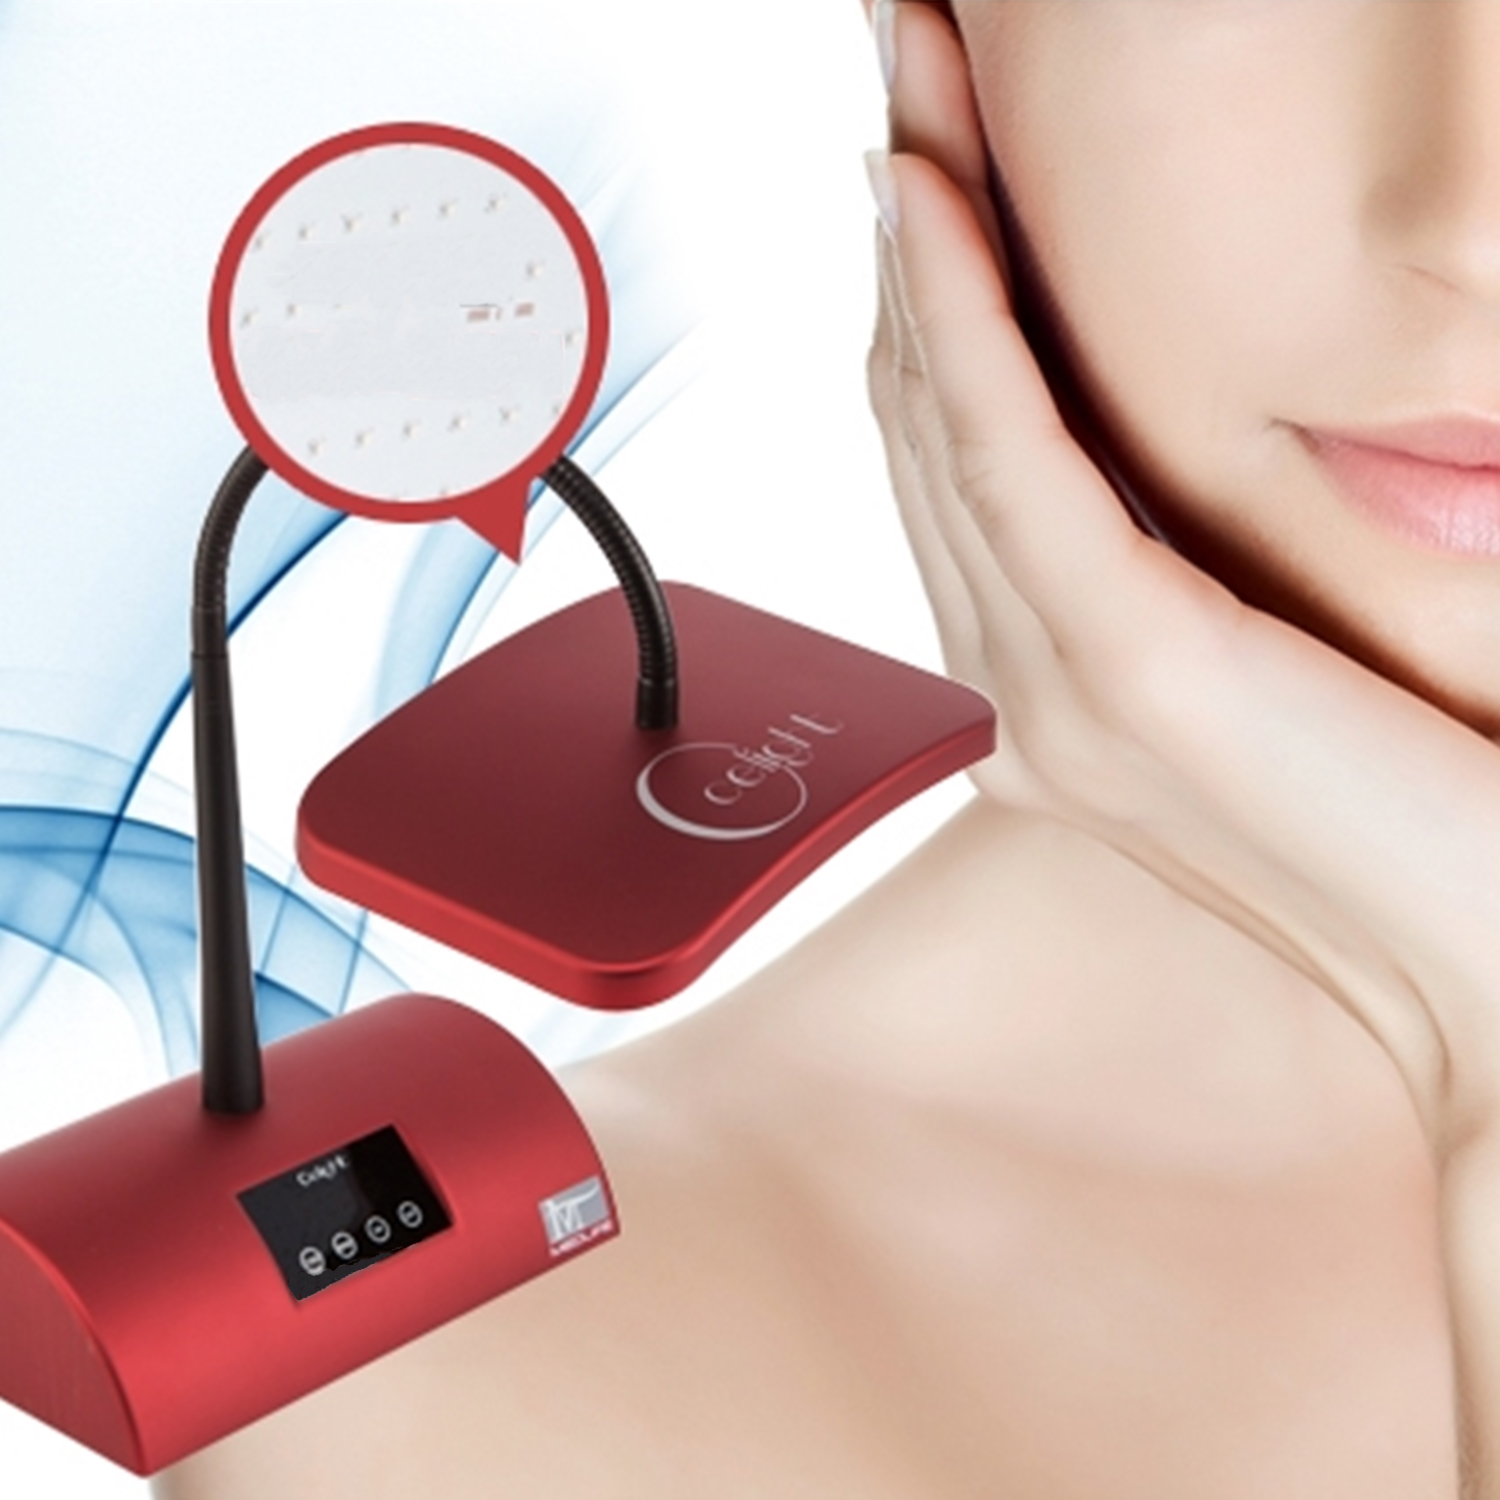 LED beauty device